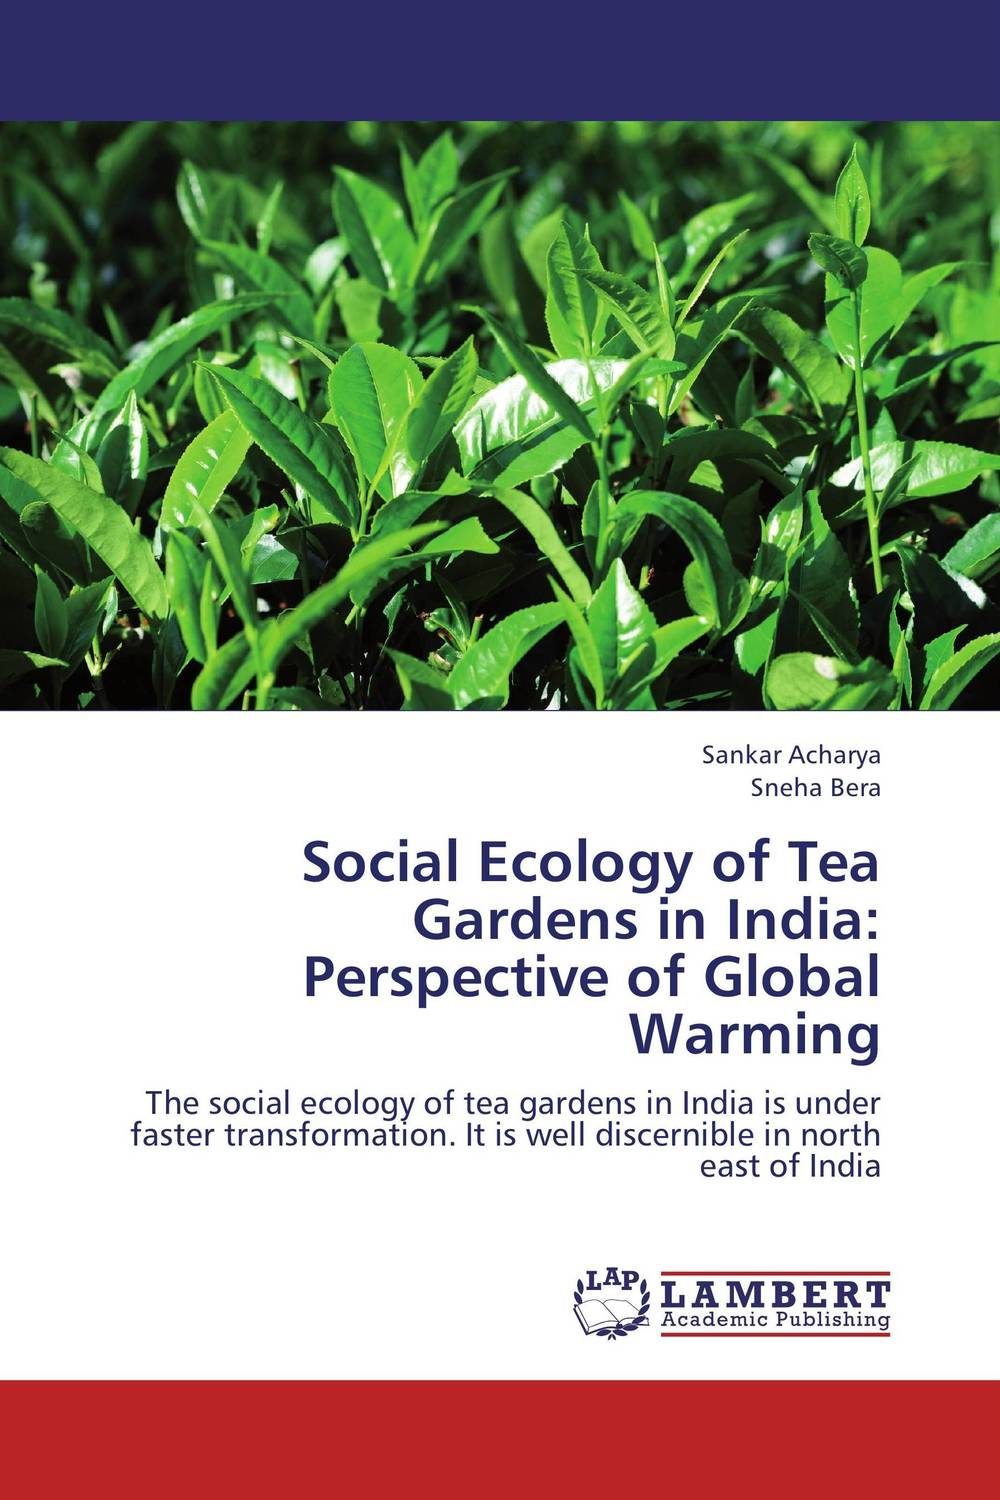 Social Ecology of Tea Gardens in India: Perspective of Global Warming linguistic diversity and social justice